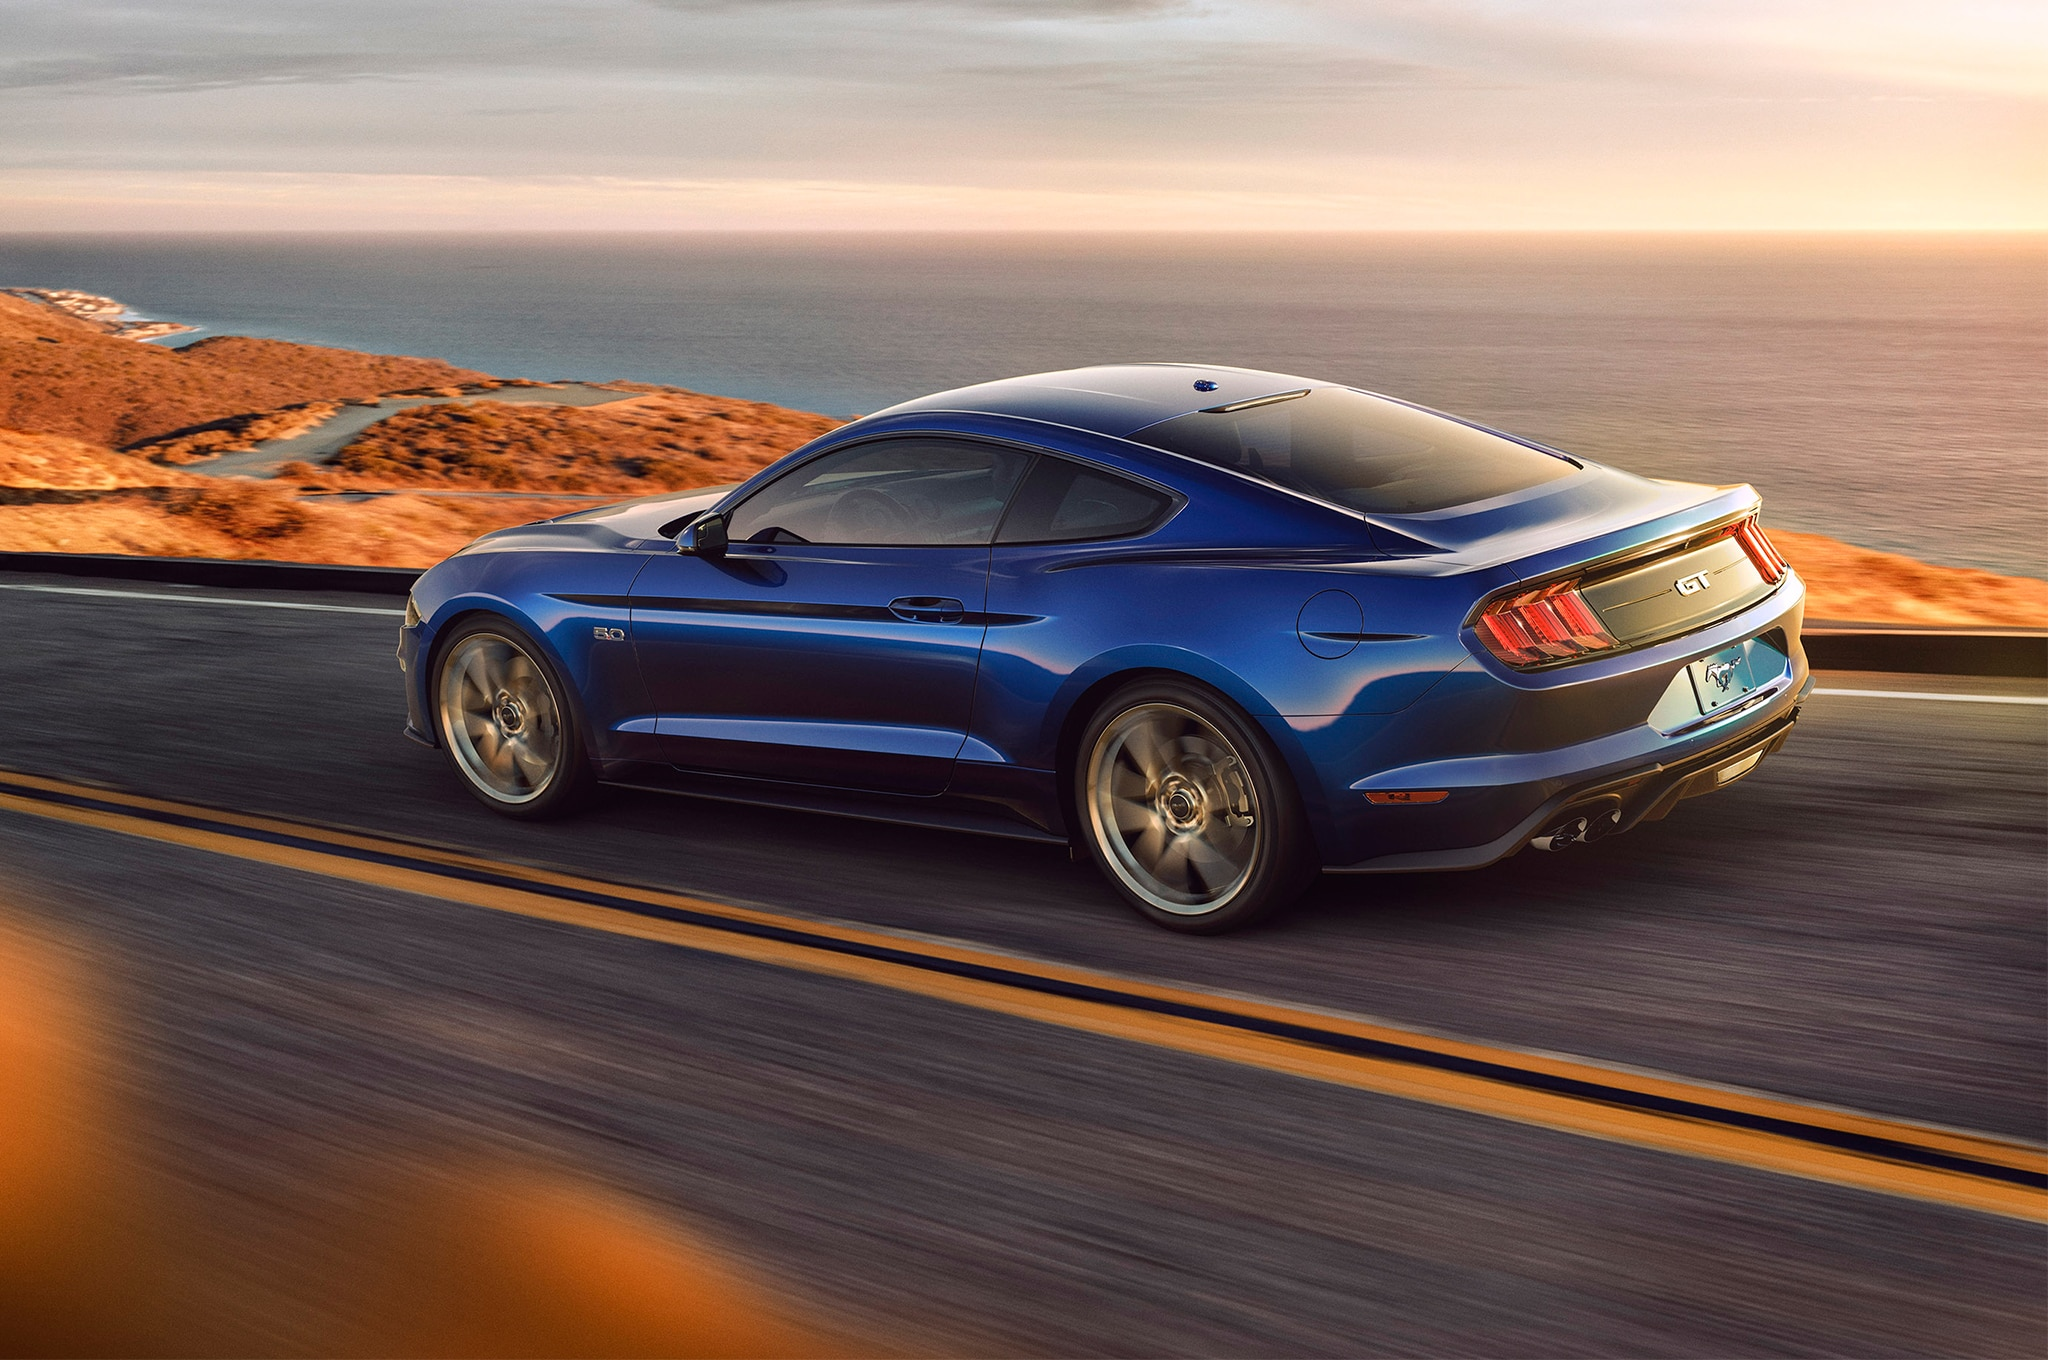 Mustang Muzzles V-8 Growl to Be 'Good Neighbor'